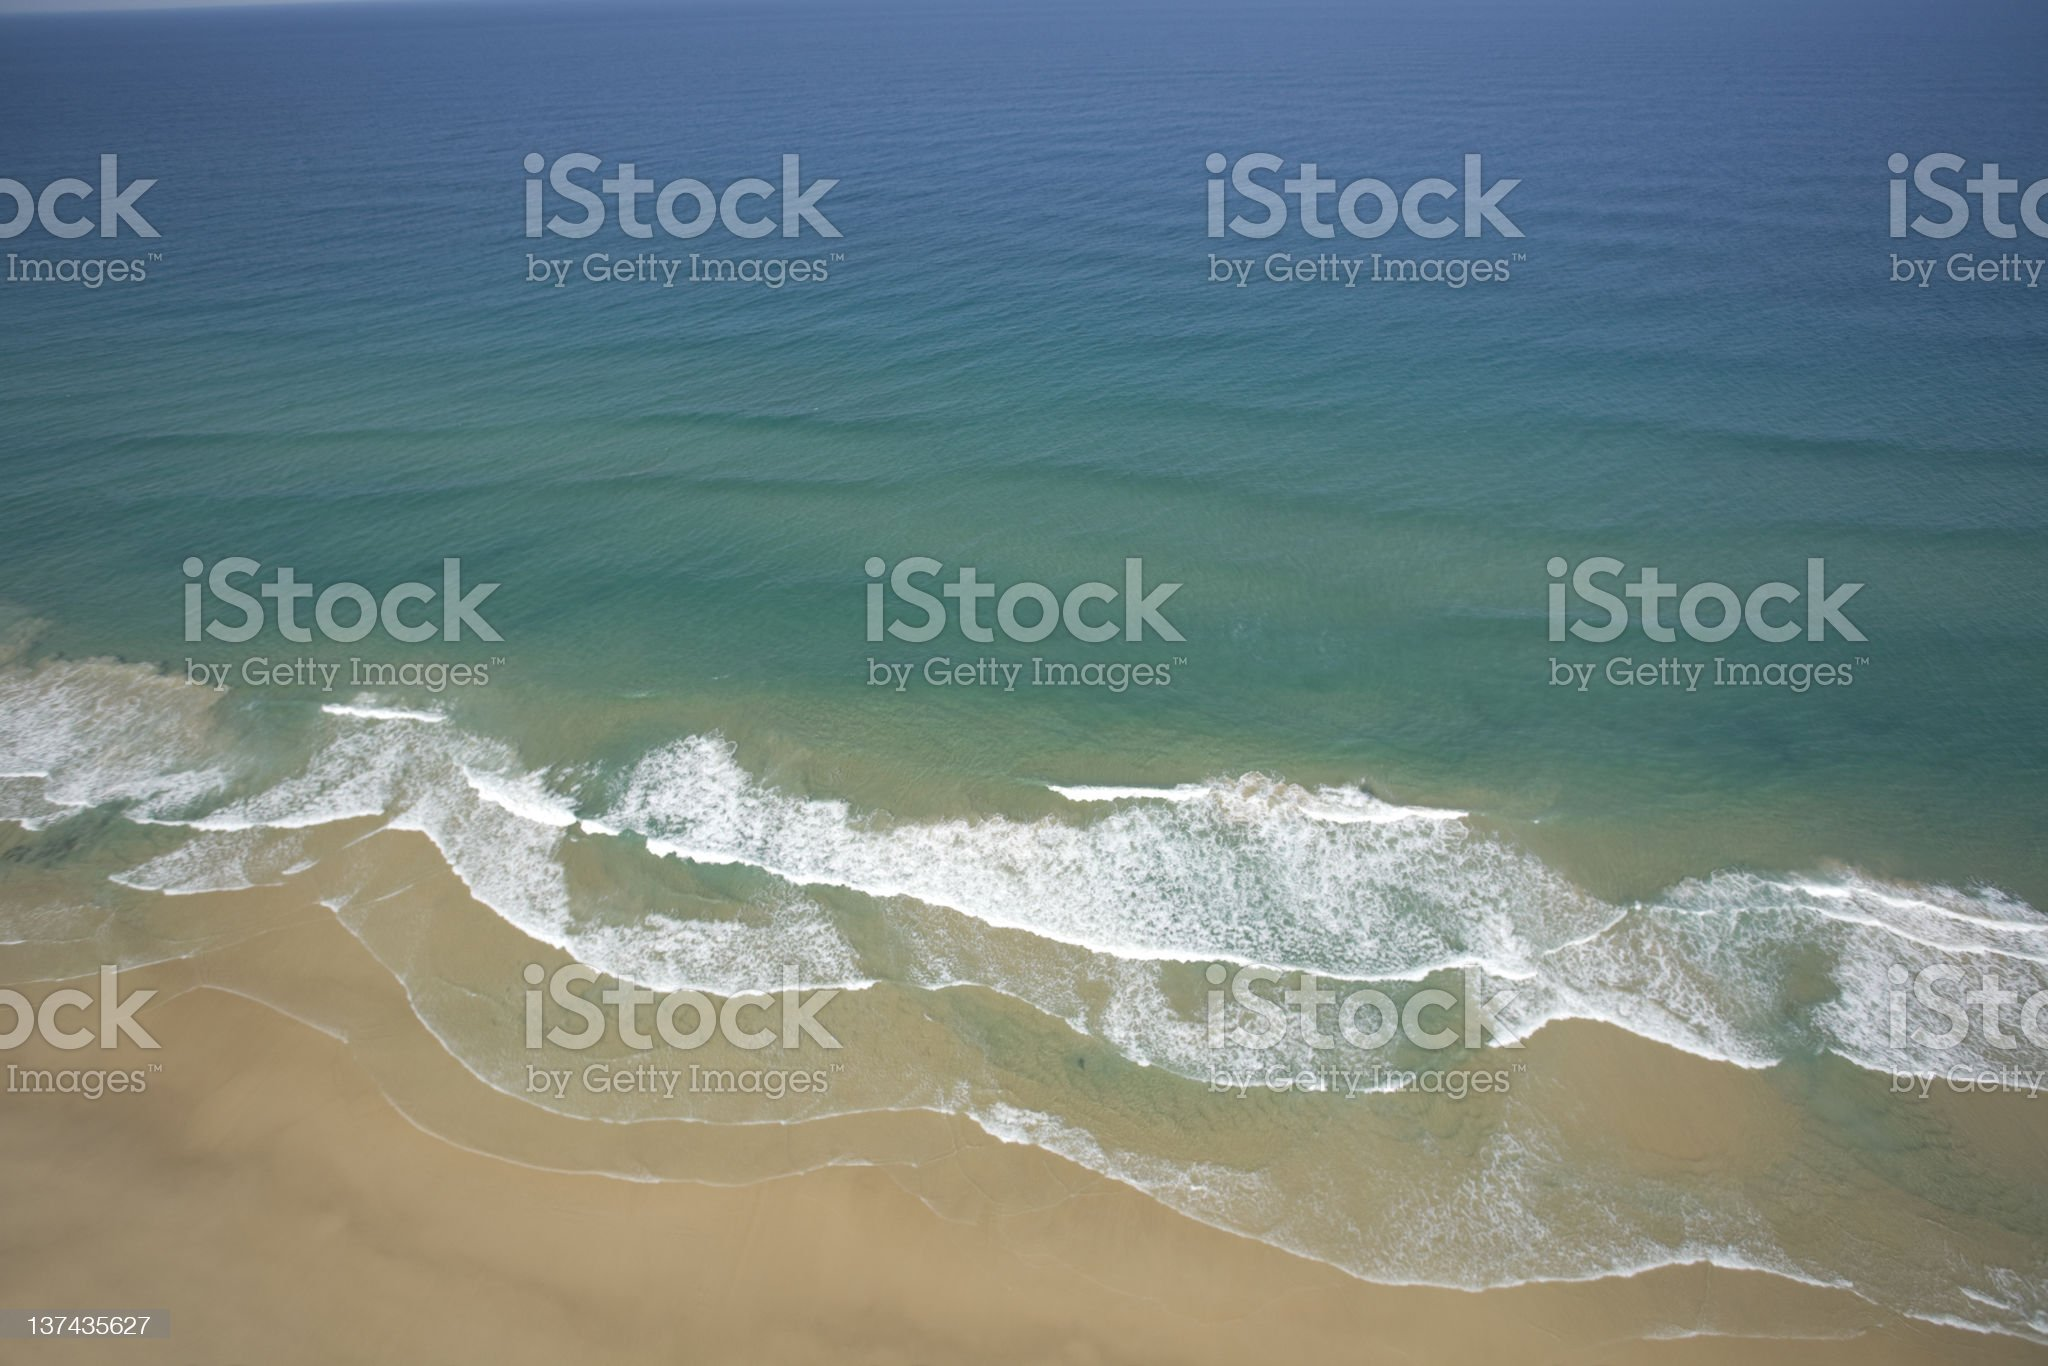 Beaches royalty-free stock photo